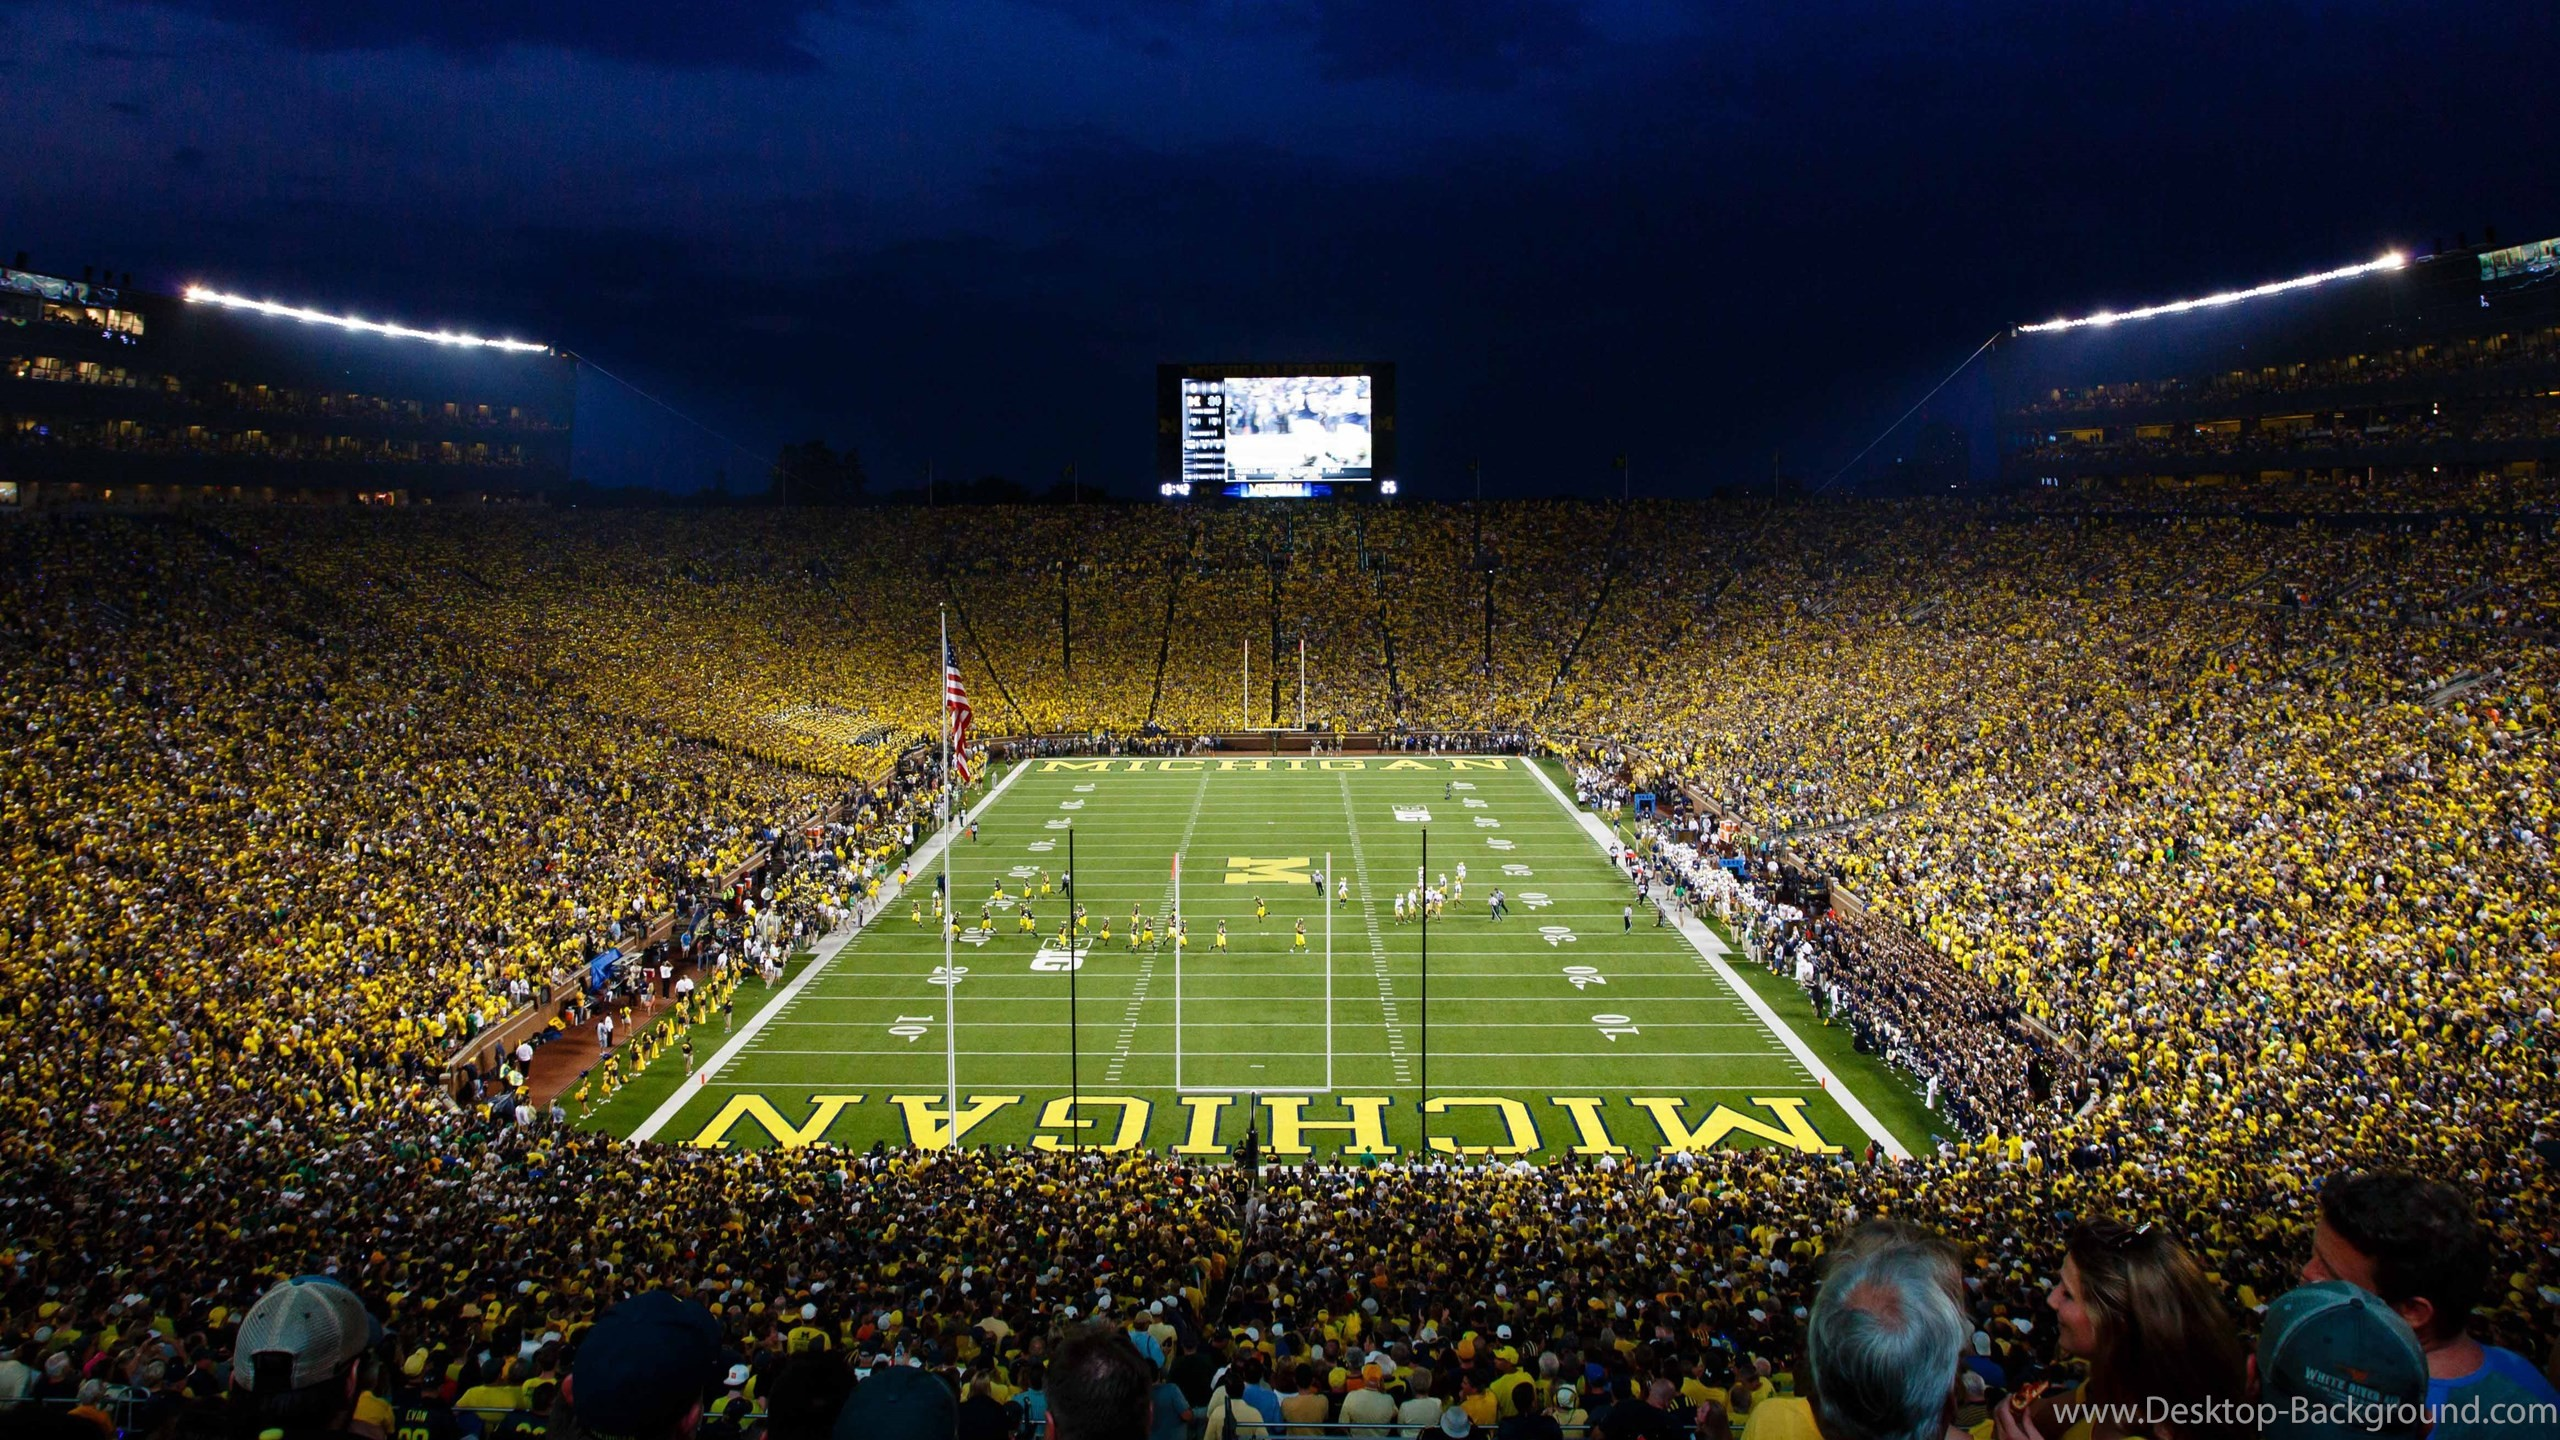 University of michigan hd wallpaper 76 images - Michigan state football backgrounds ...